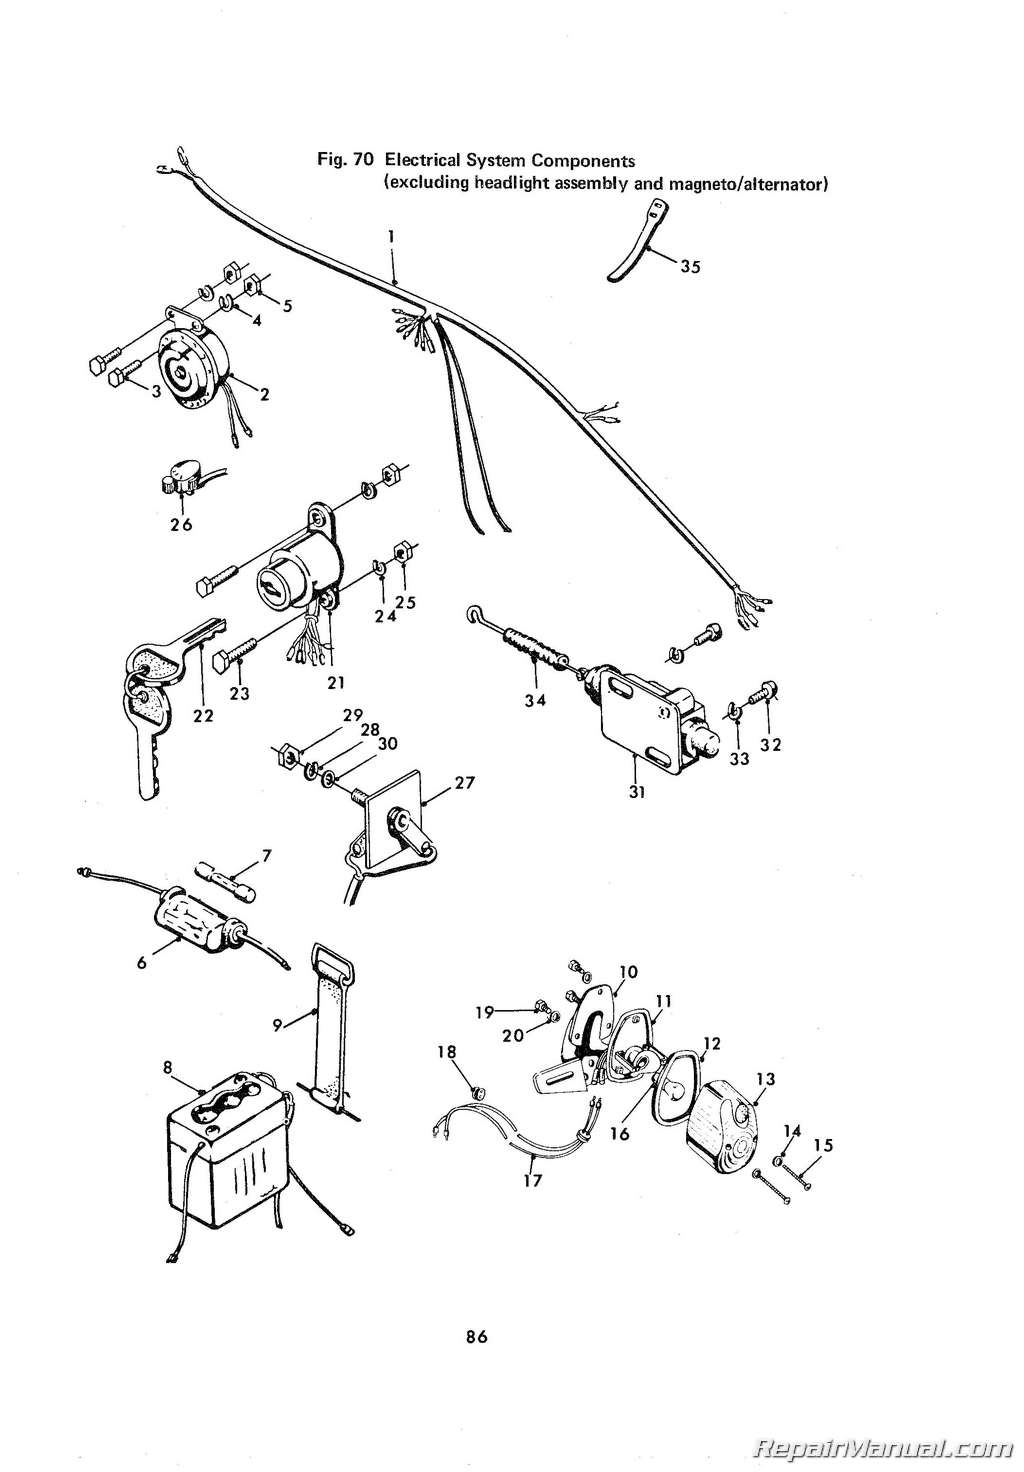 Ace 100 Wiring Diagram. ace 100. did you know we have wiring diagrams  strictly hodaka. hodaka 90 100 ace motorcycle motocross parts manuals for  sale. 1964 1967 hodaka ace 90 service manual.2002-acura-tl-radio.info